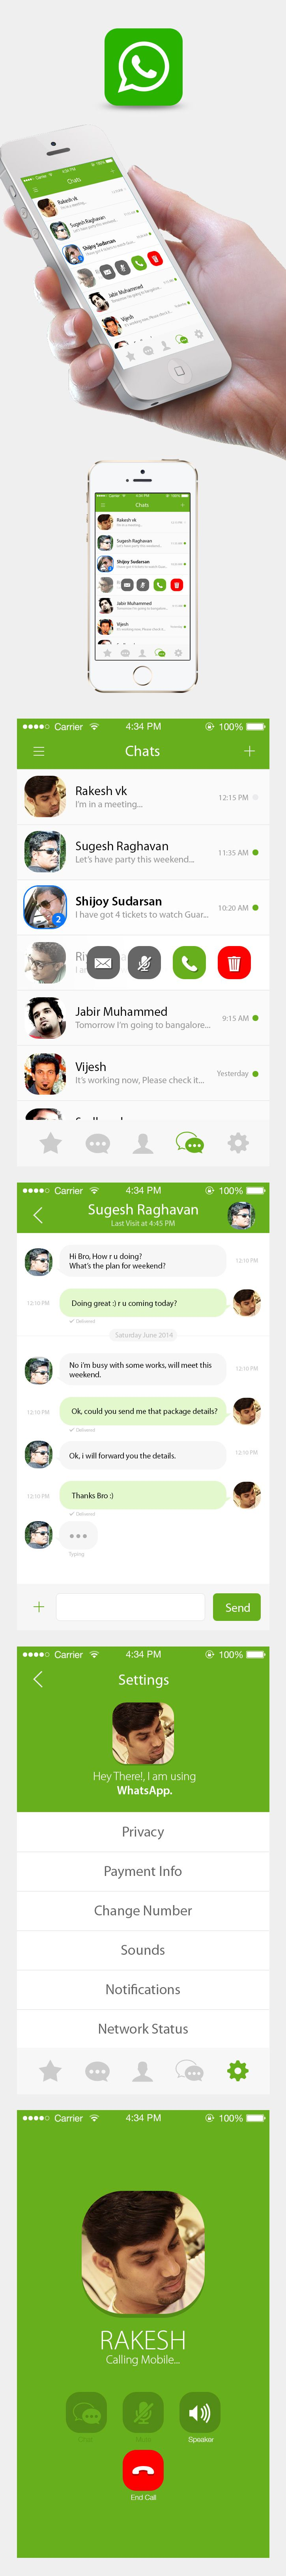 WhatsApp - Concept Redesign